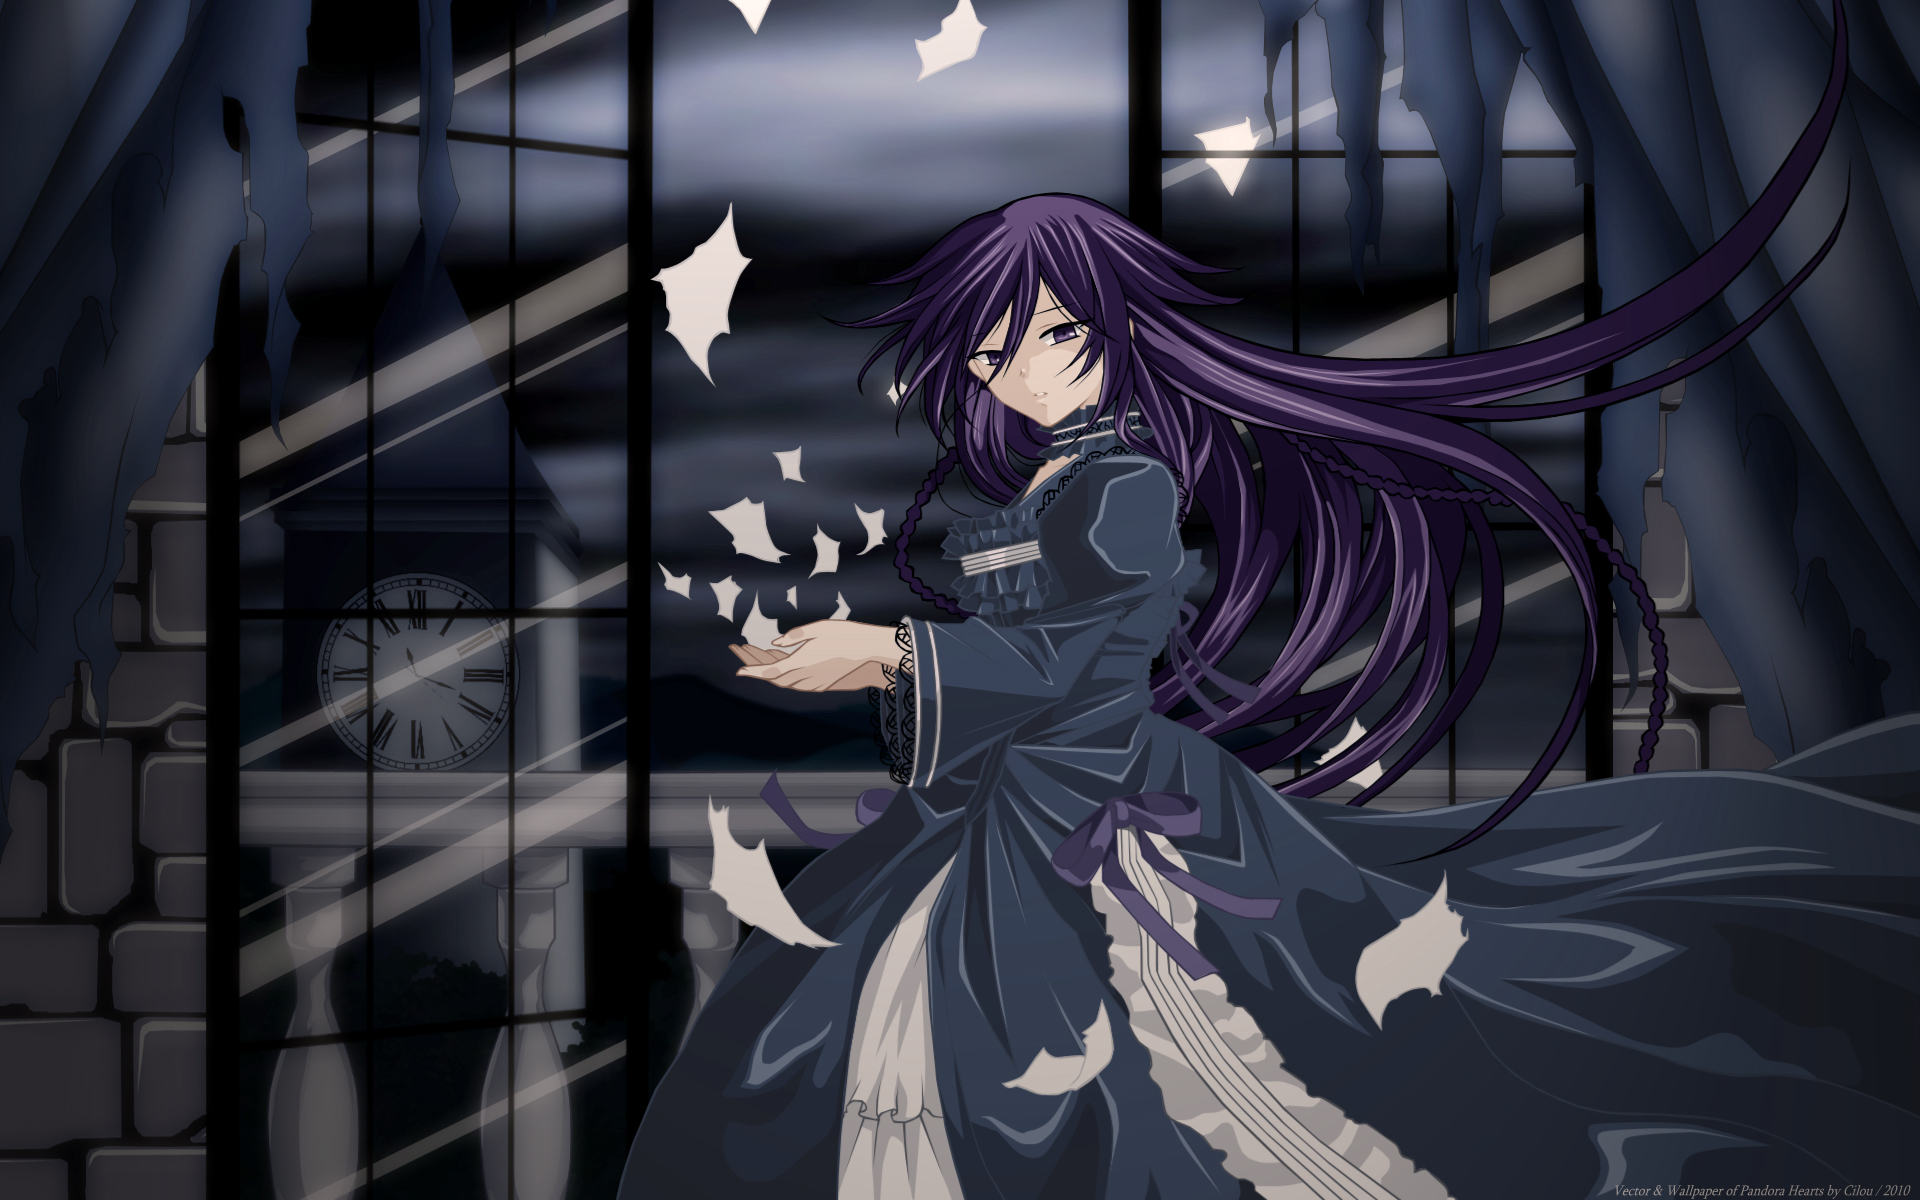 Background Images Wallpaper Abyss: Pandora Hearts HD Wallpaper